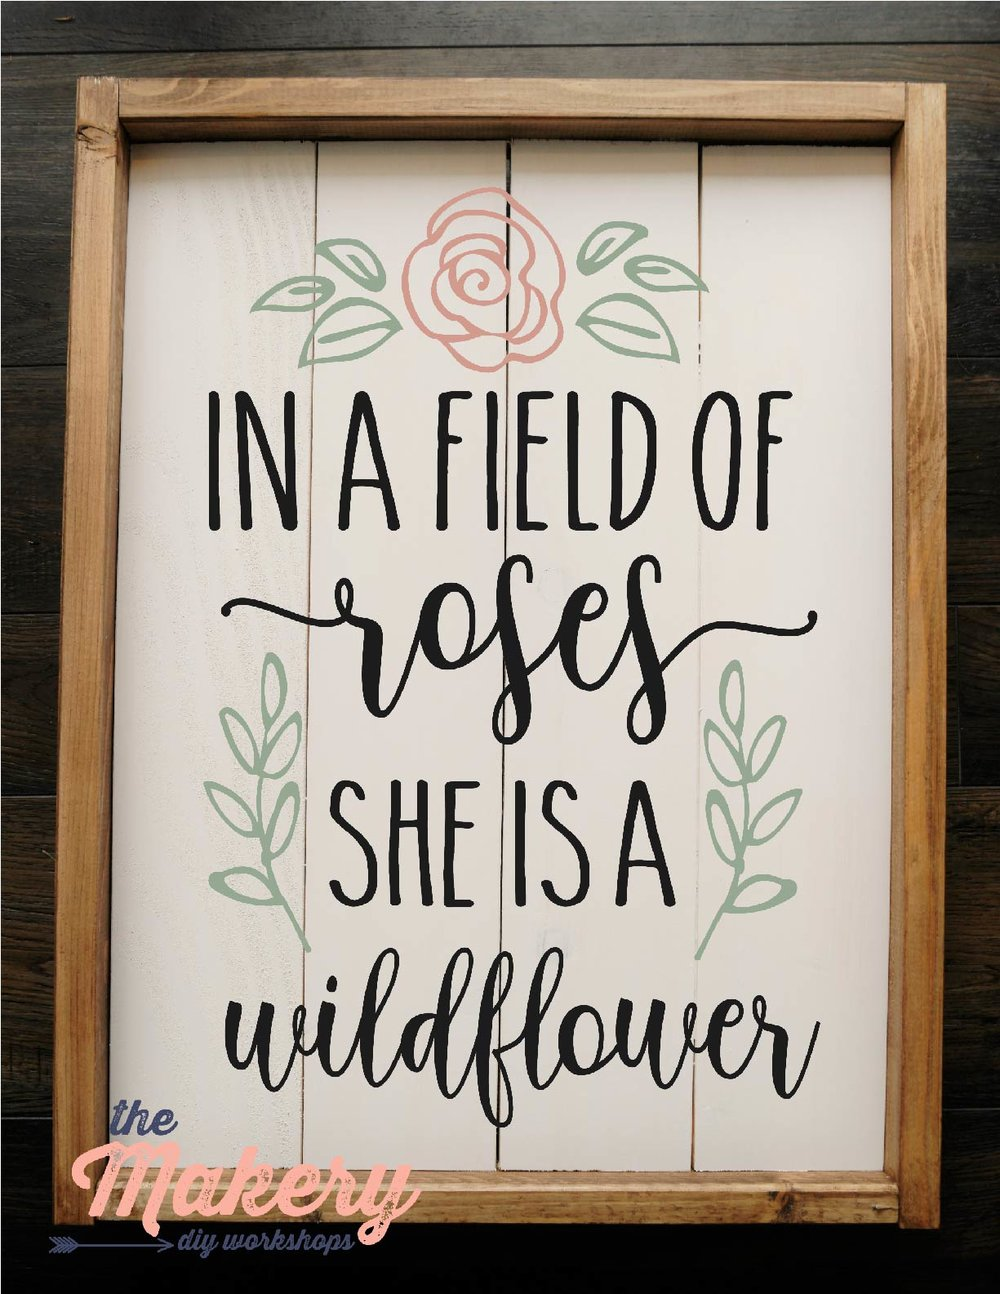 In a Field of Roses, She is a Wildflower